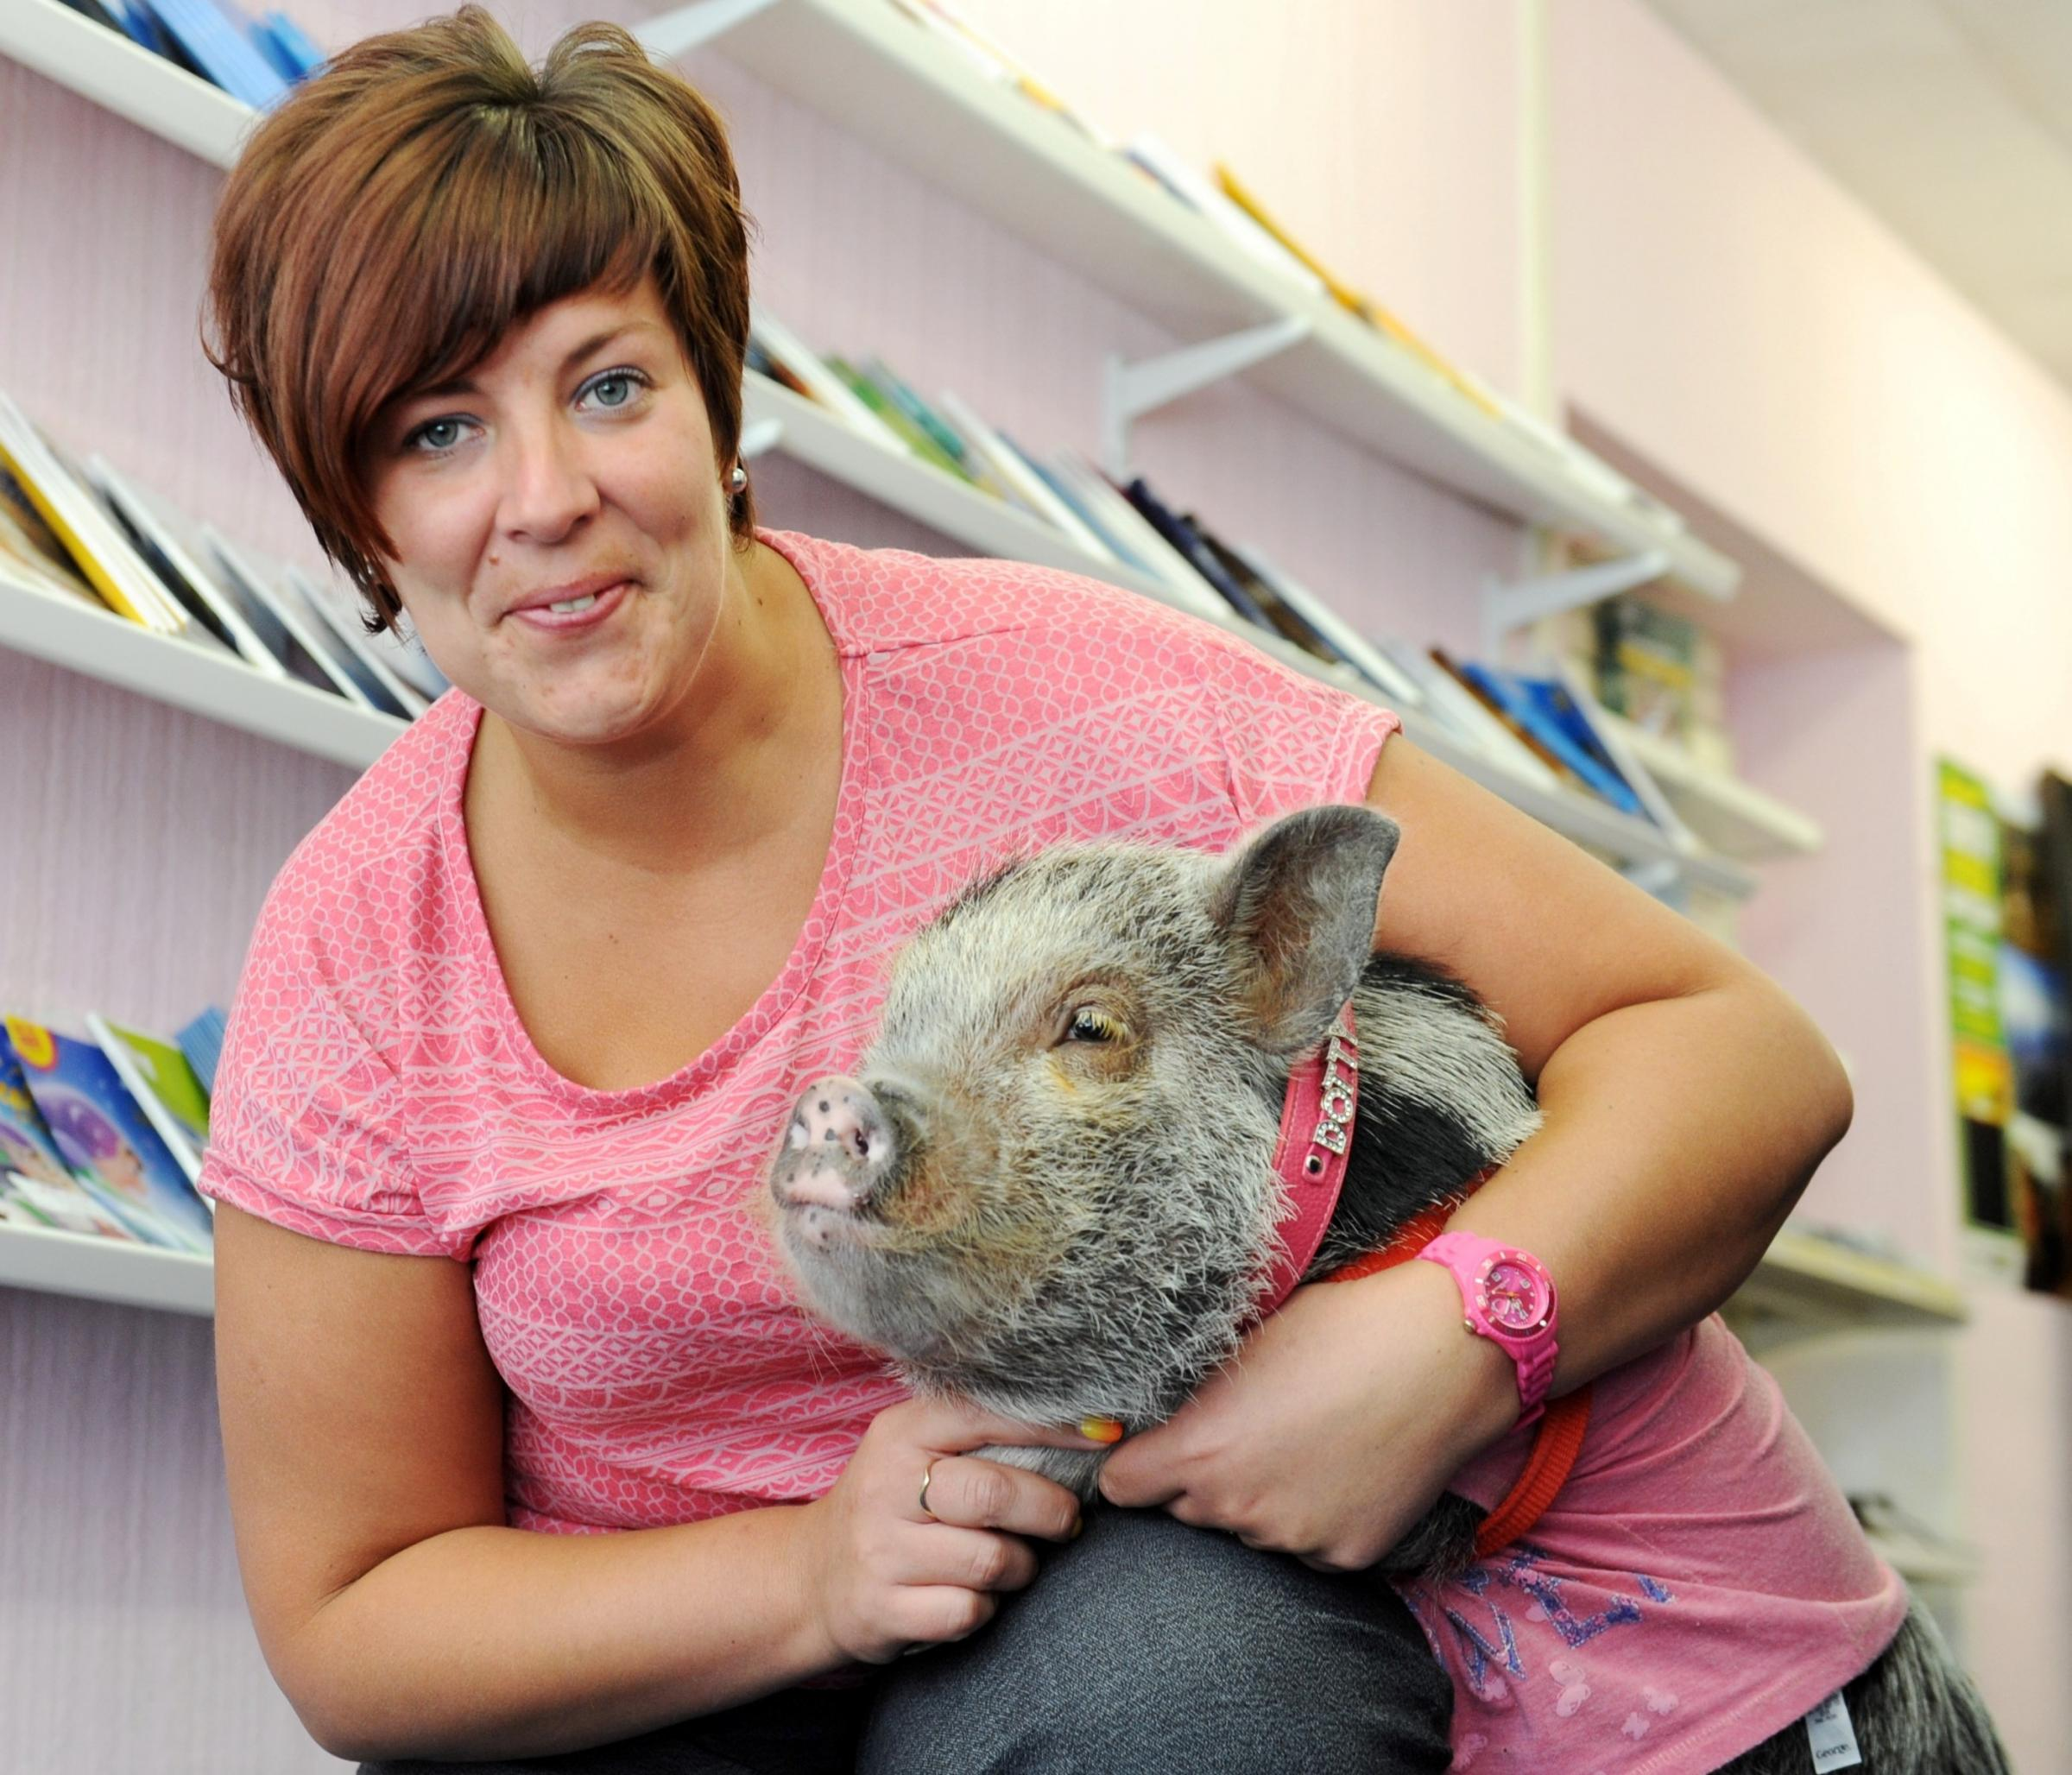 Woman's pet pig is star of her office